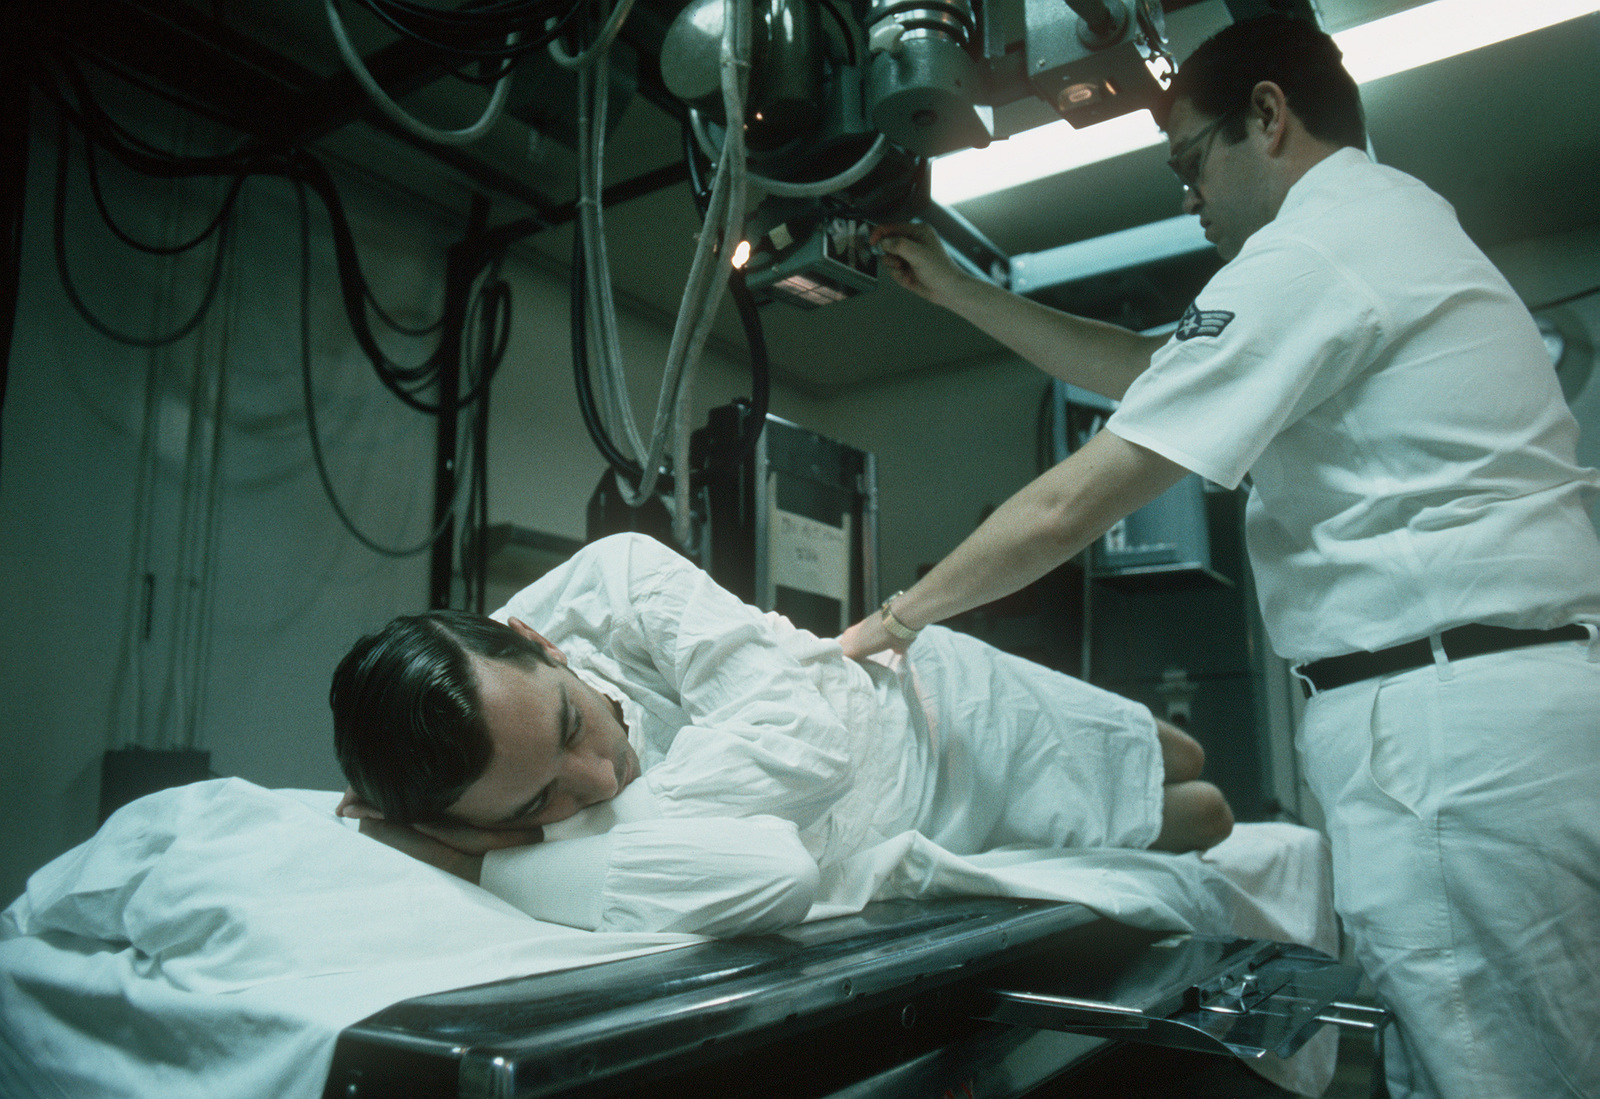 Former POW and U.S. Air Force CPT Lynn E. Guenther is x-rayed by a technician in the Grant Medical Center. CPT Guenther was captured on 26 Dec 71 and released by the North Vietnamese in Hanoi on 12 Feb 73